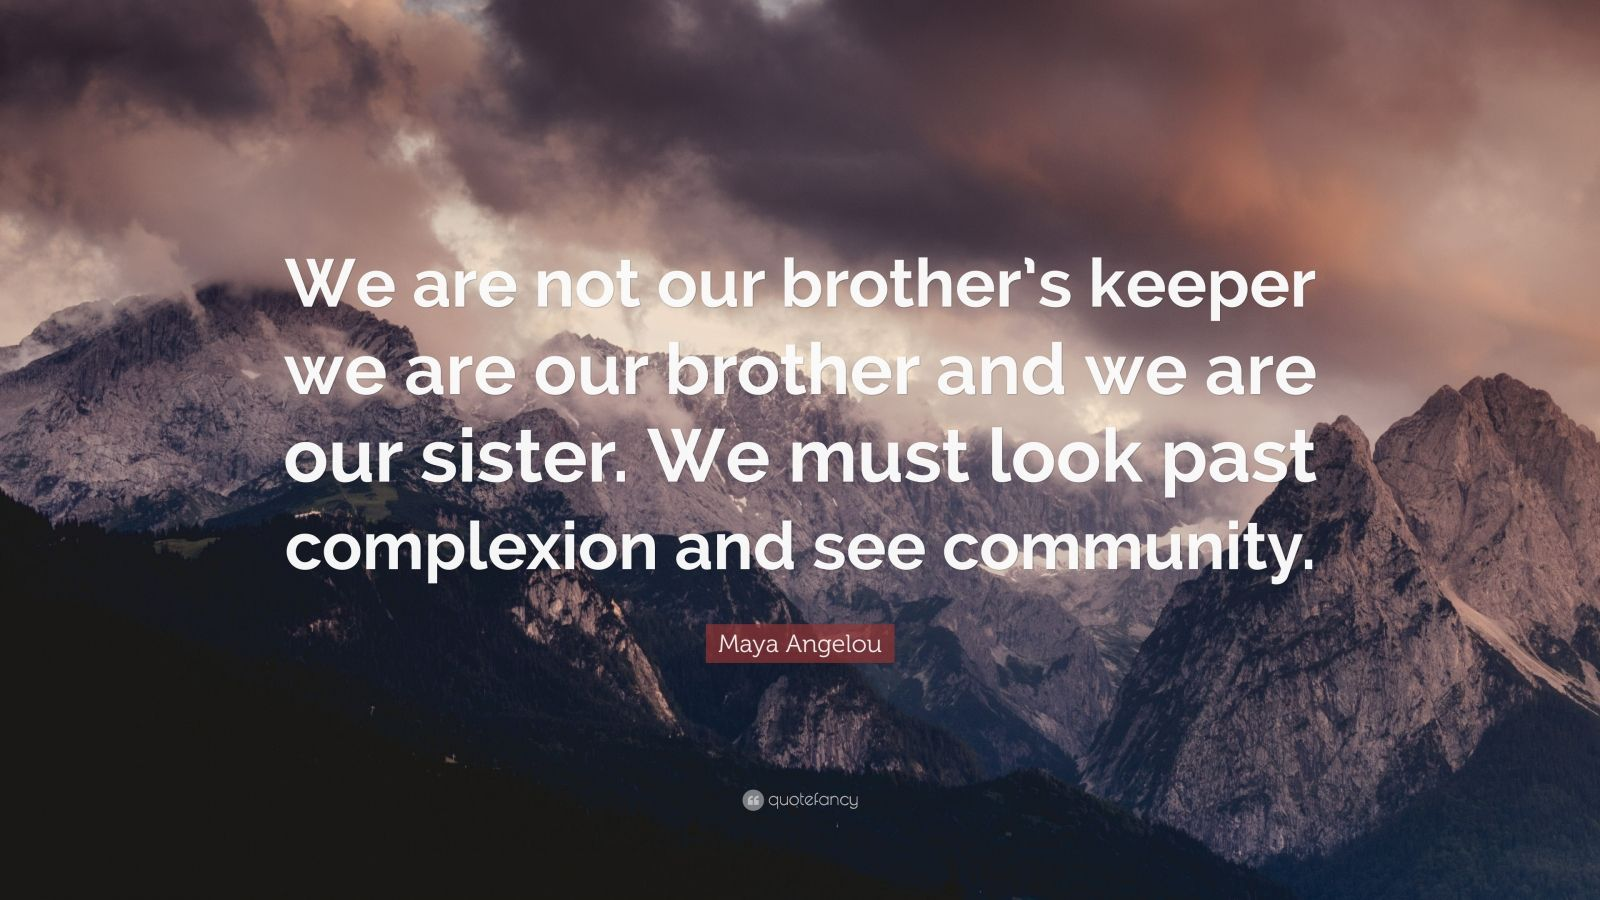 "Maya Angelou Quote: ""We are not our brother's keeper we are our brother and we are our sister. We must look past complexion and see community."""